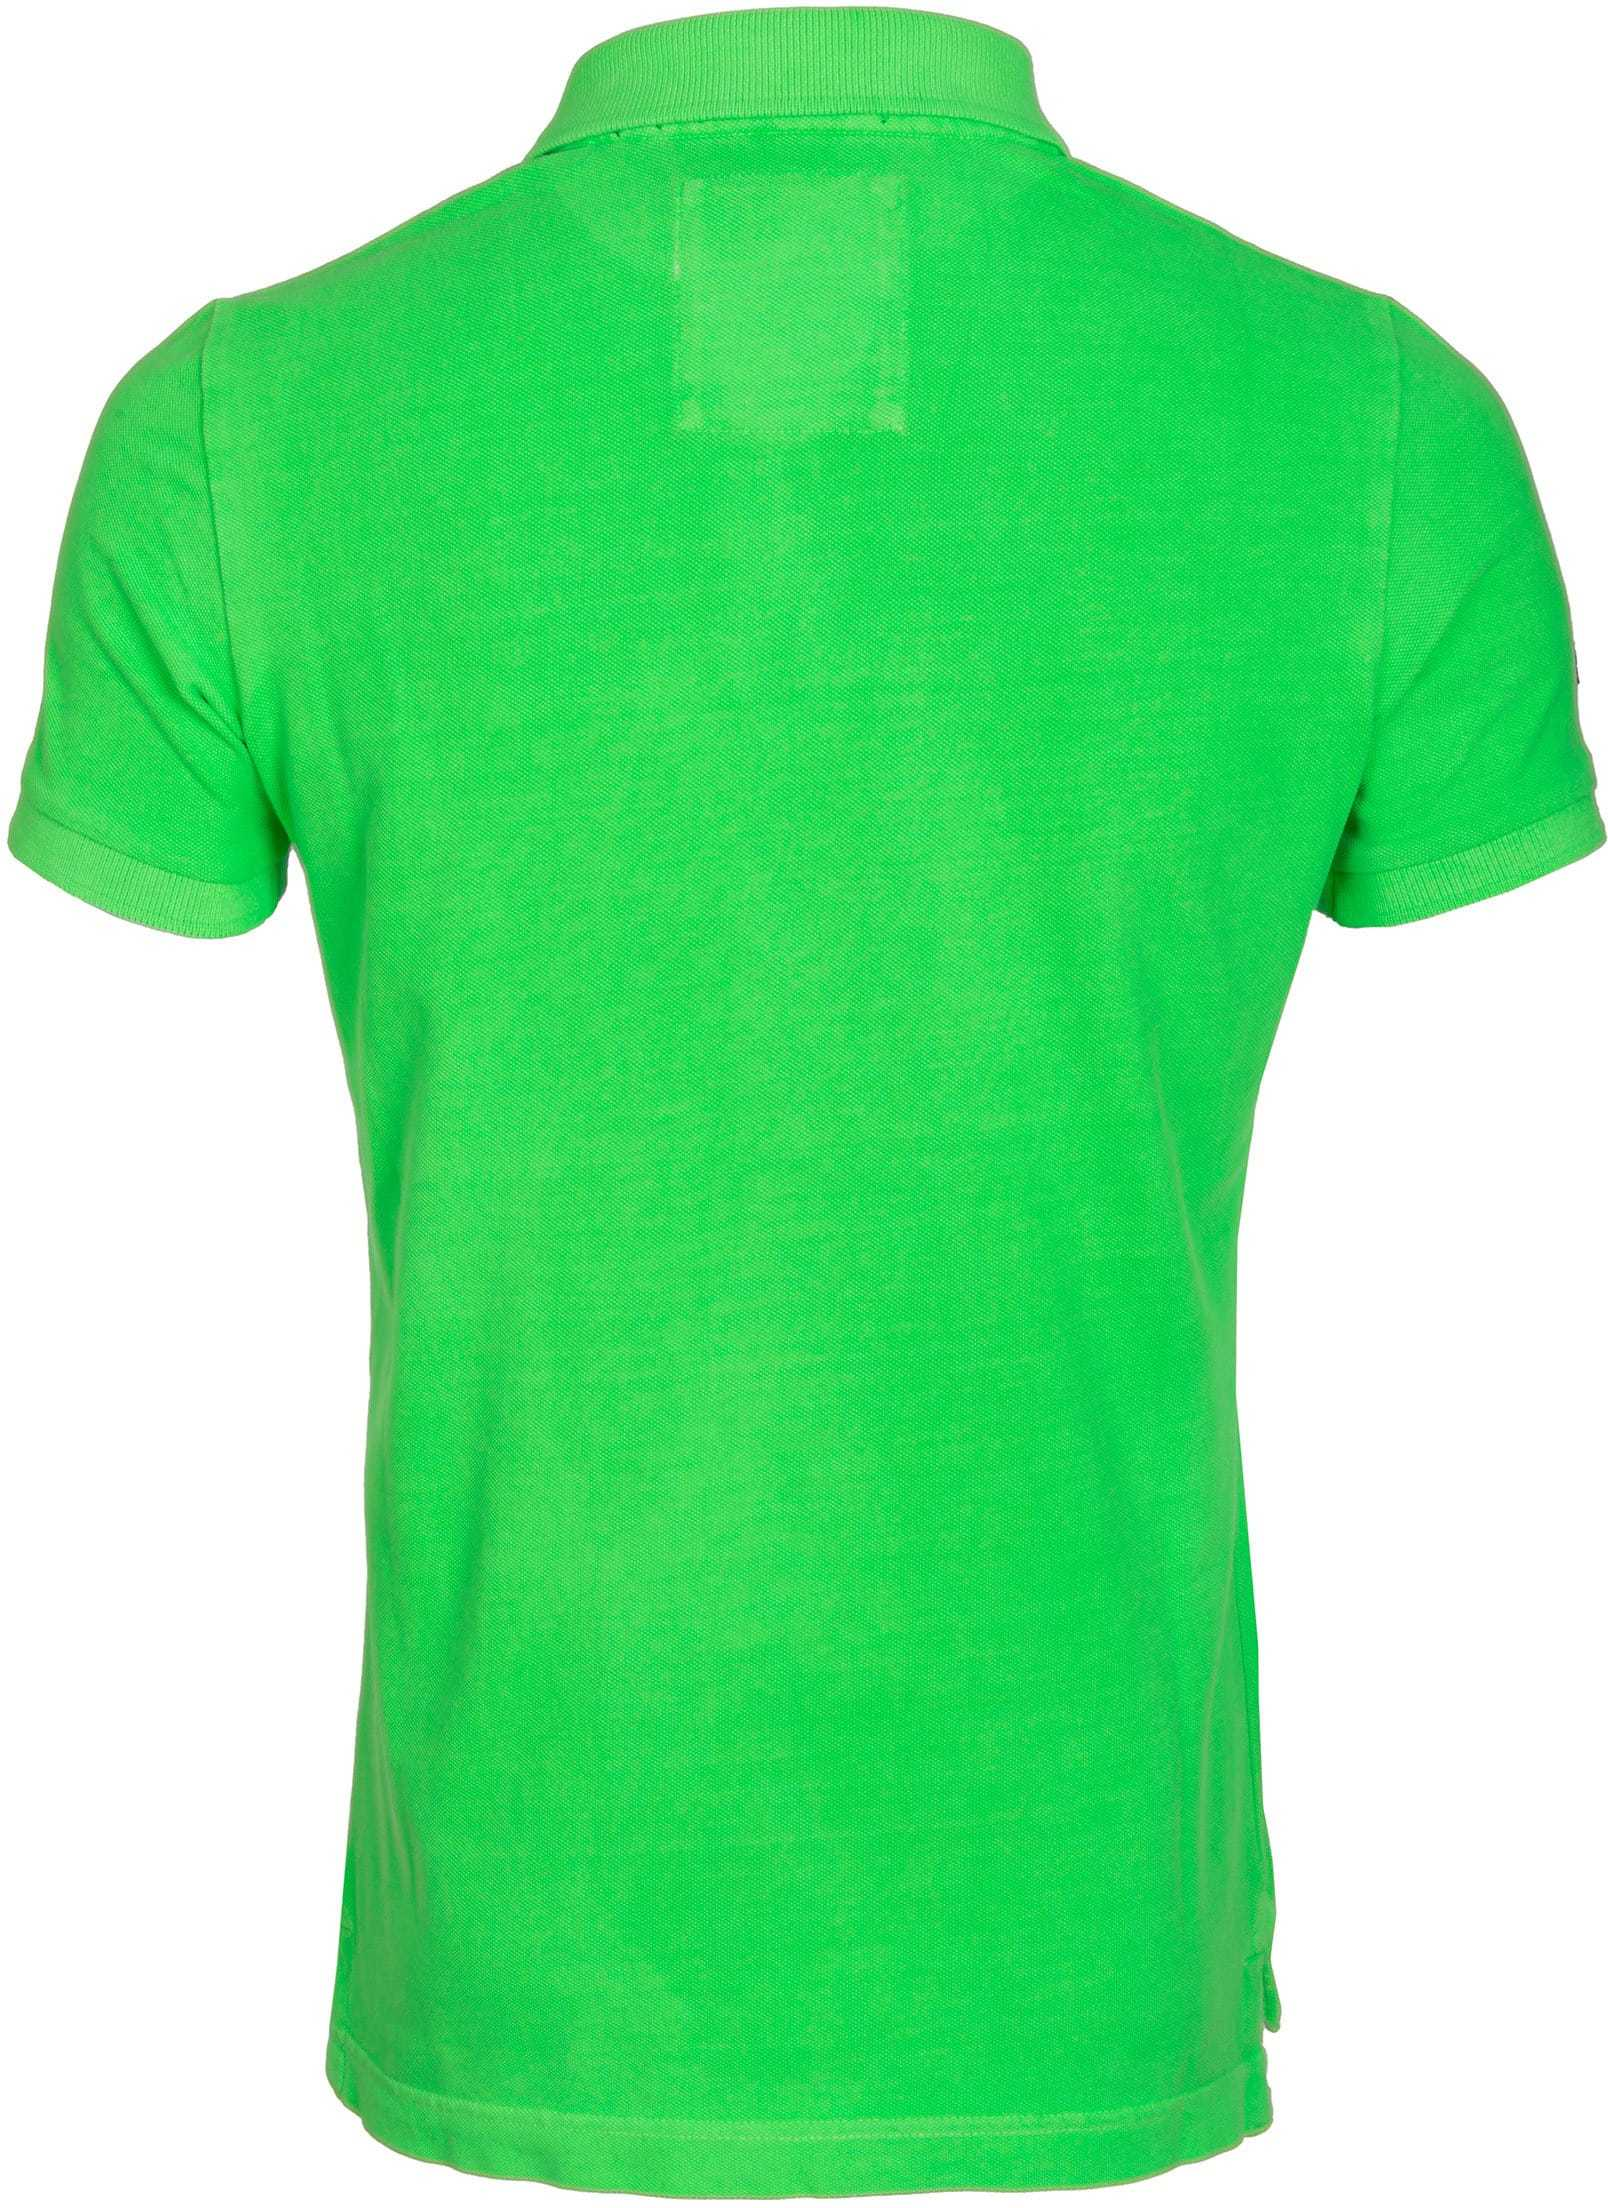 Superdry Vintage Destroyed Polo Neon Groen foto 3